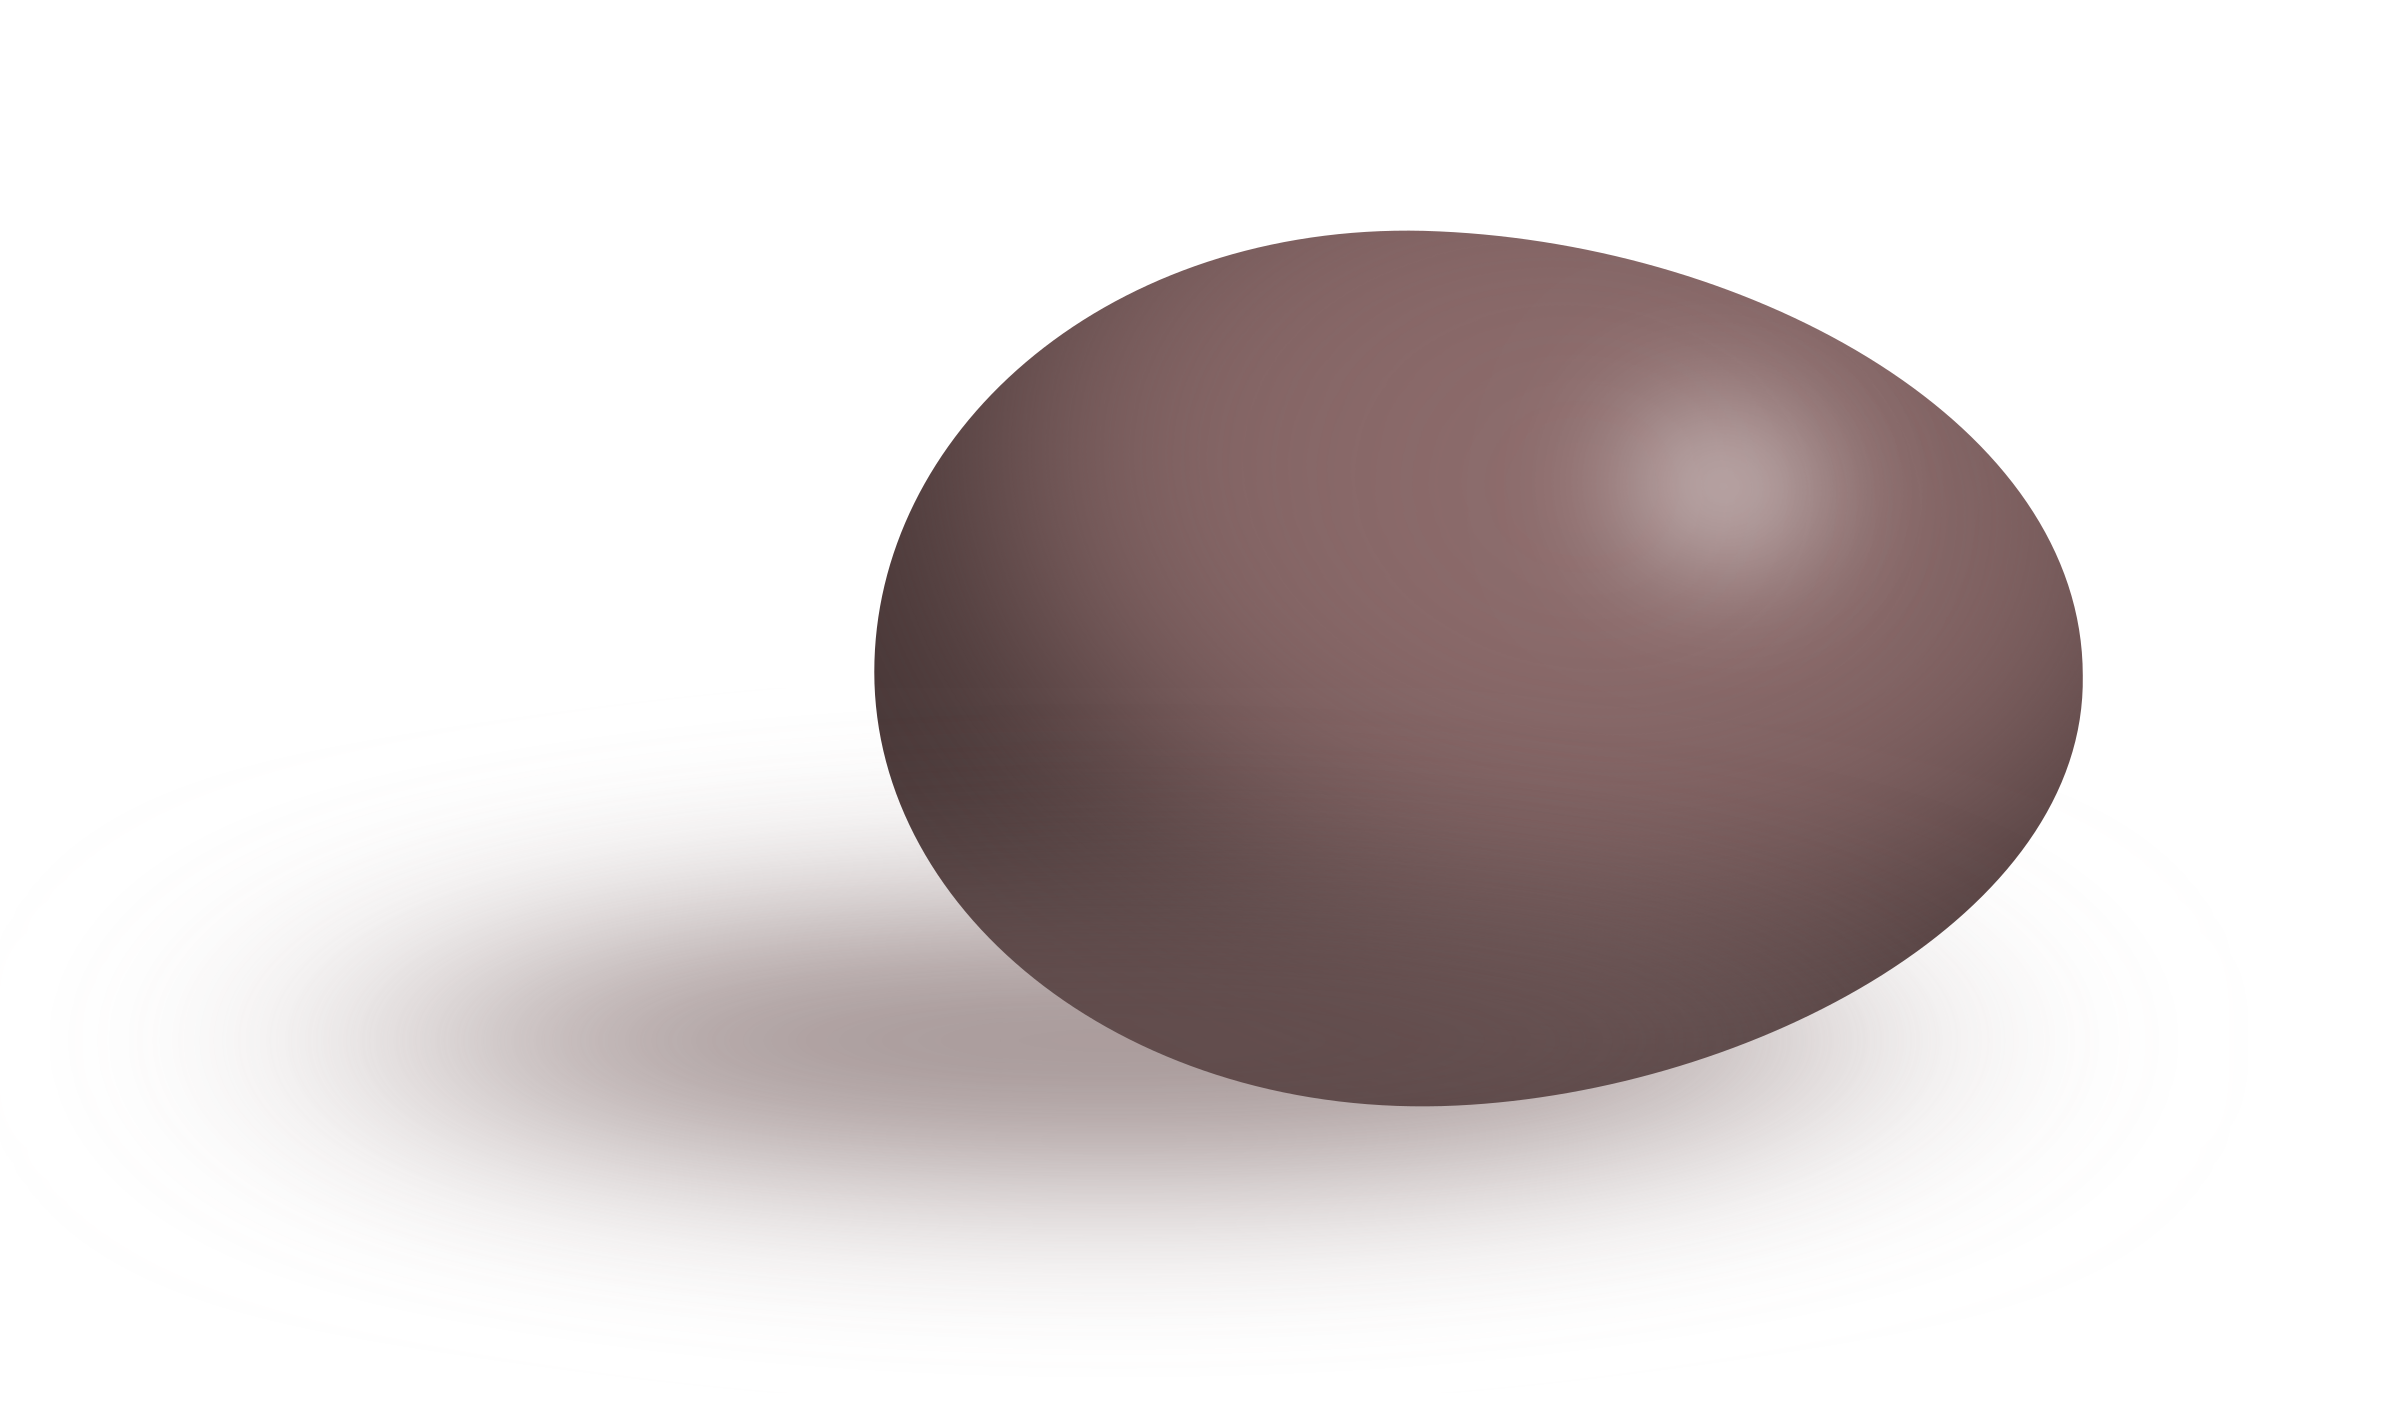 Brown egg by Tomas Sobek